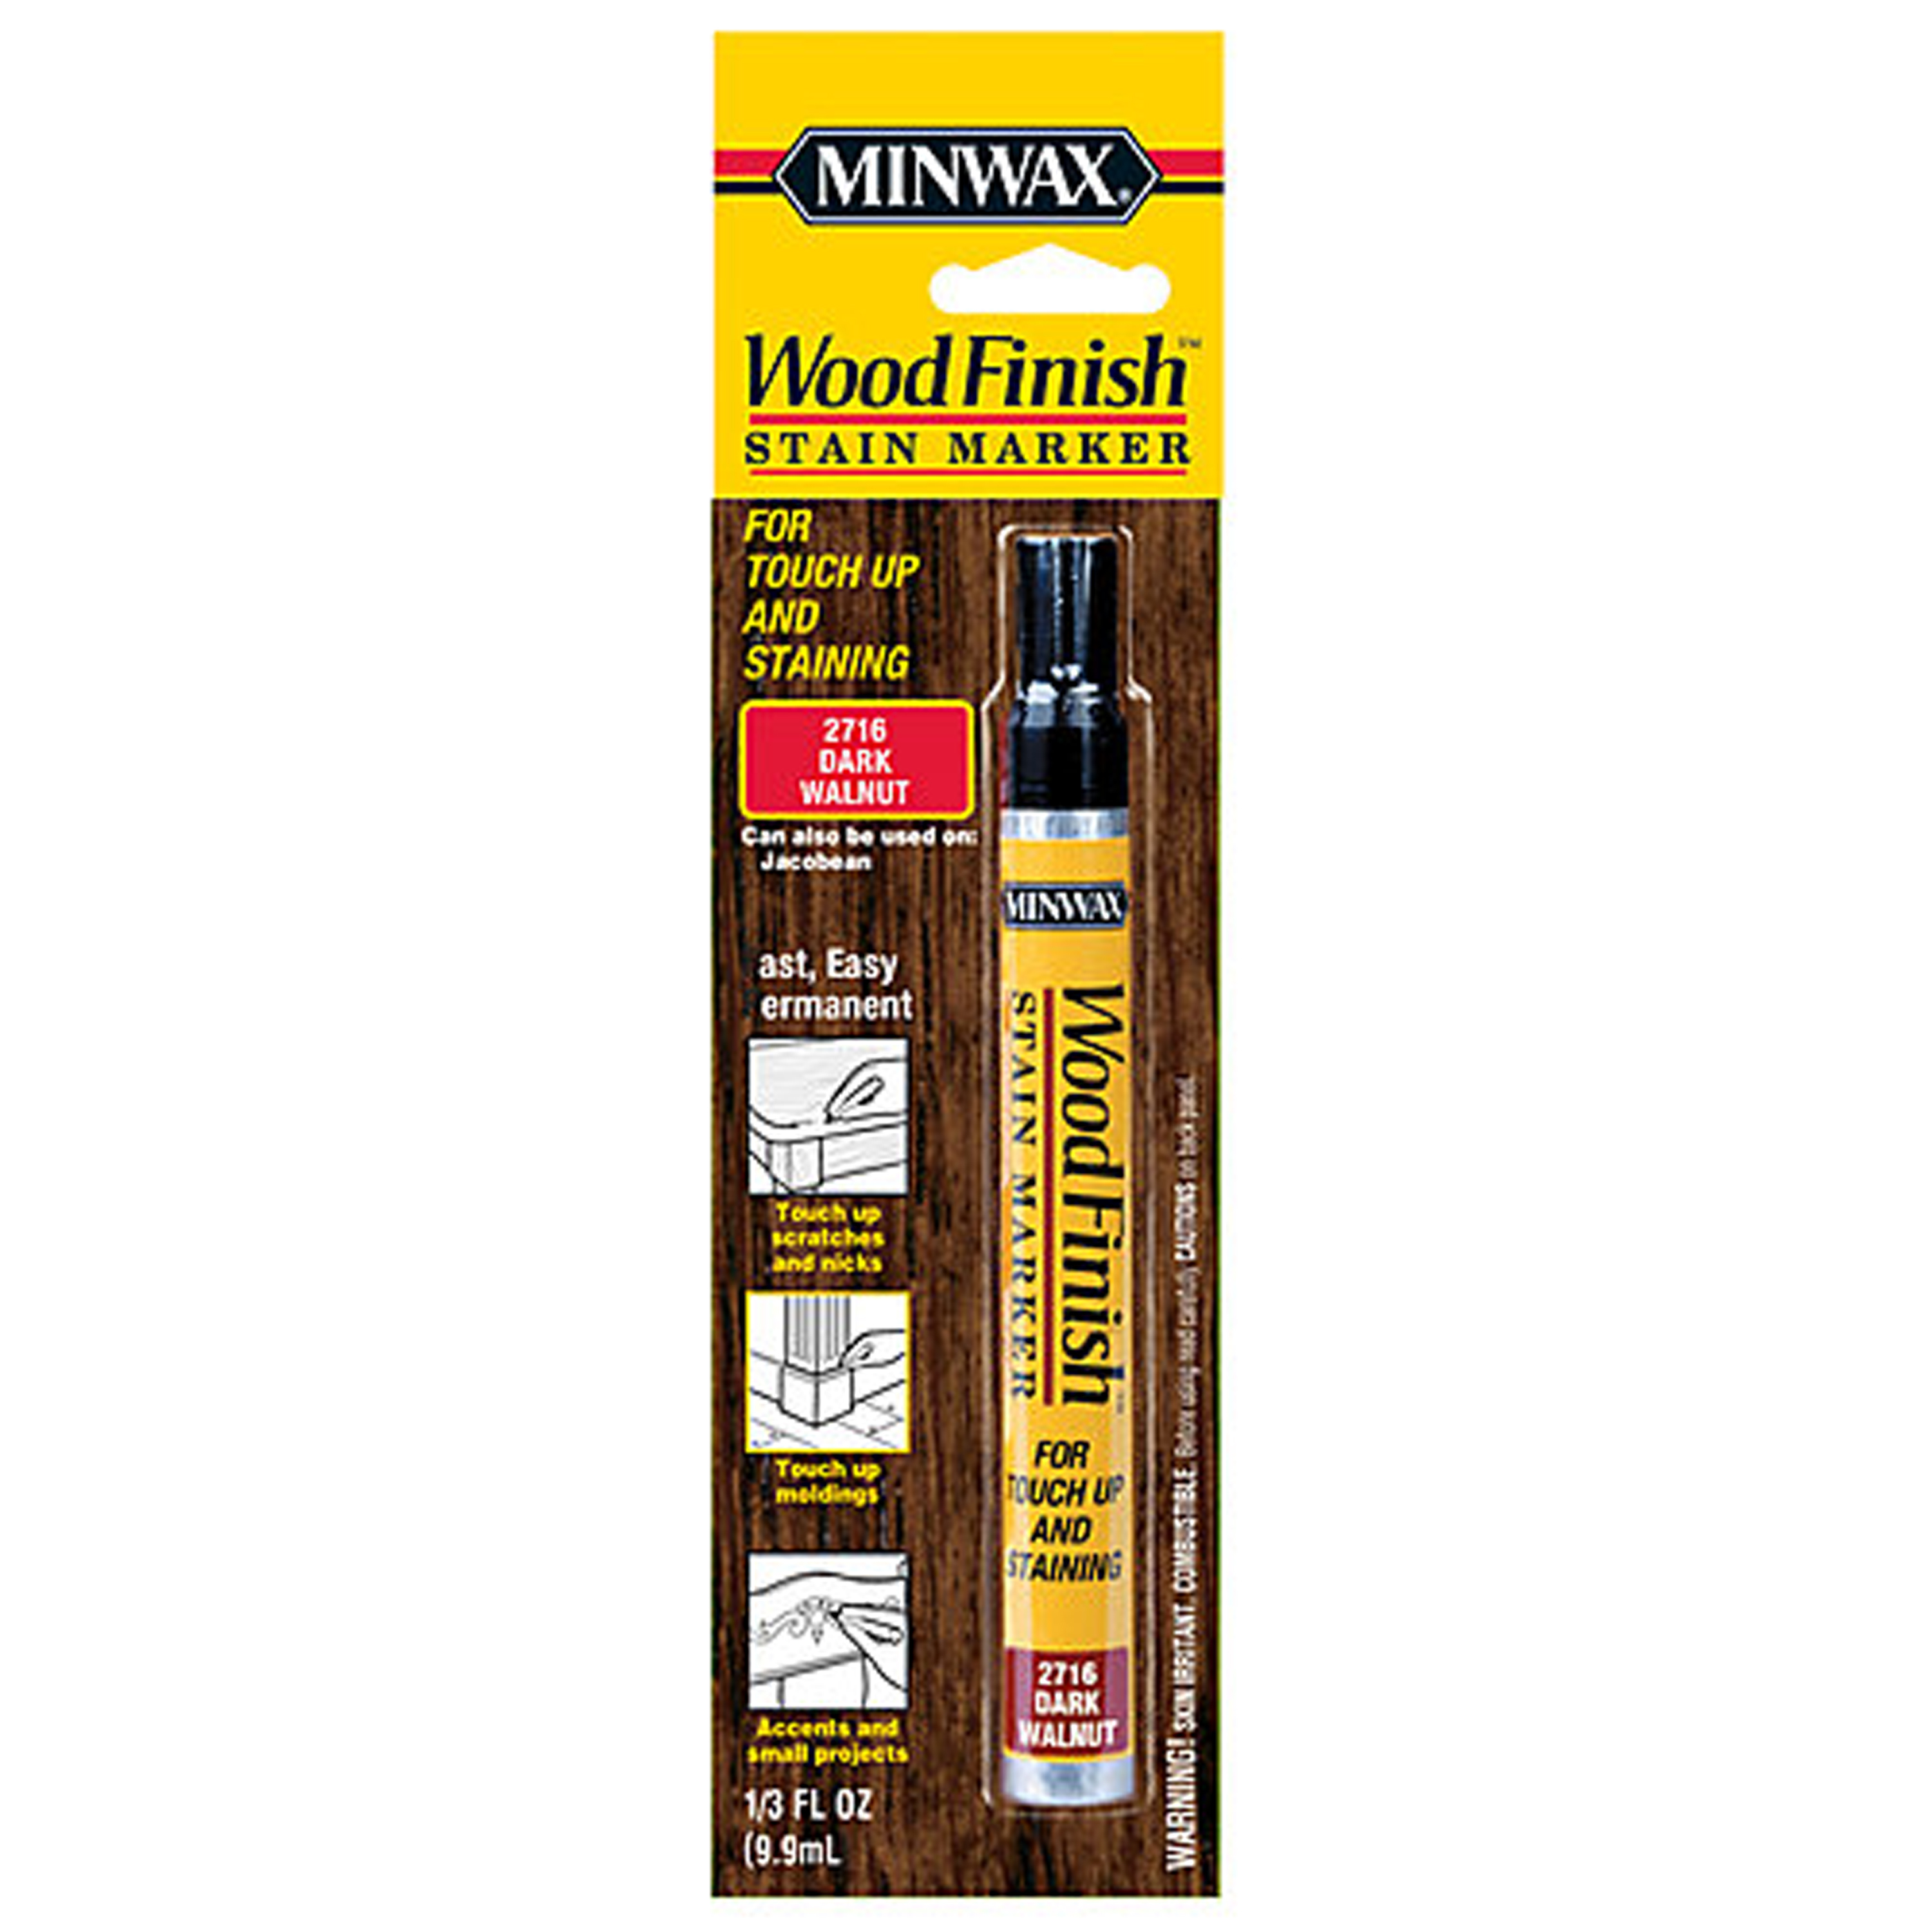 Minwax Wood Finish Stain Marker, 1/3 oz Dark Walnut